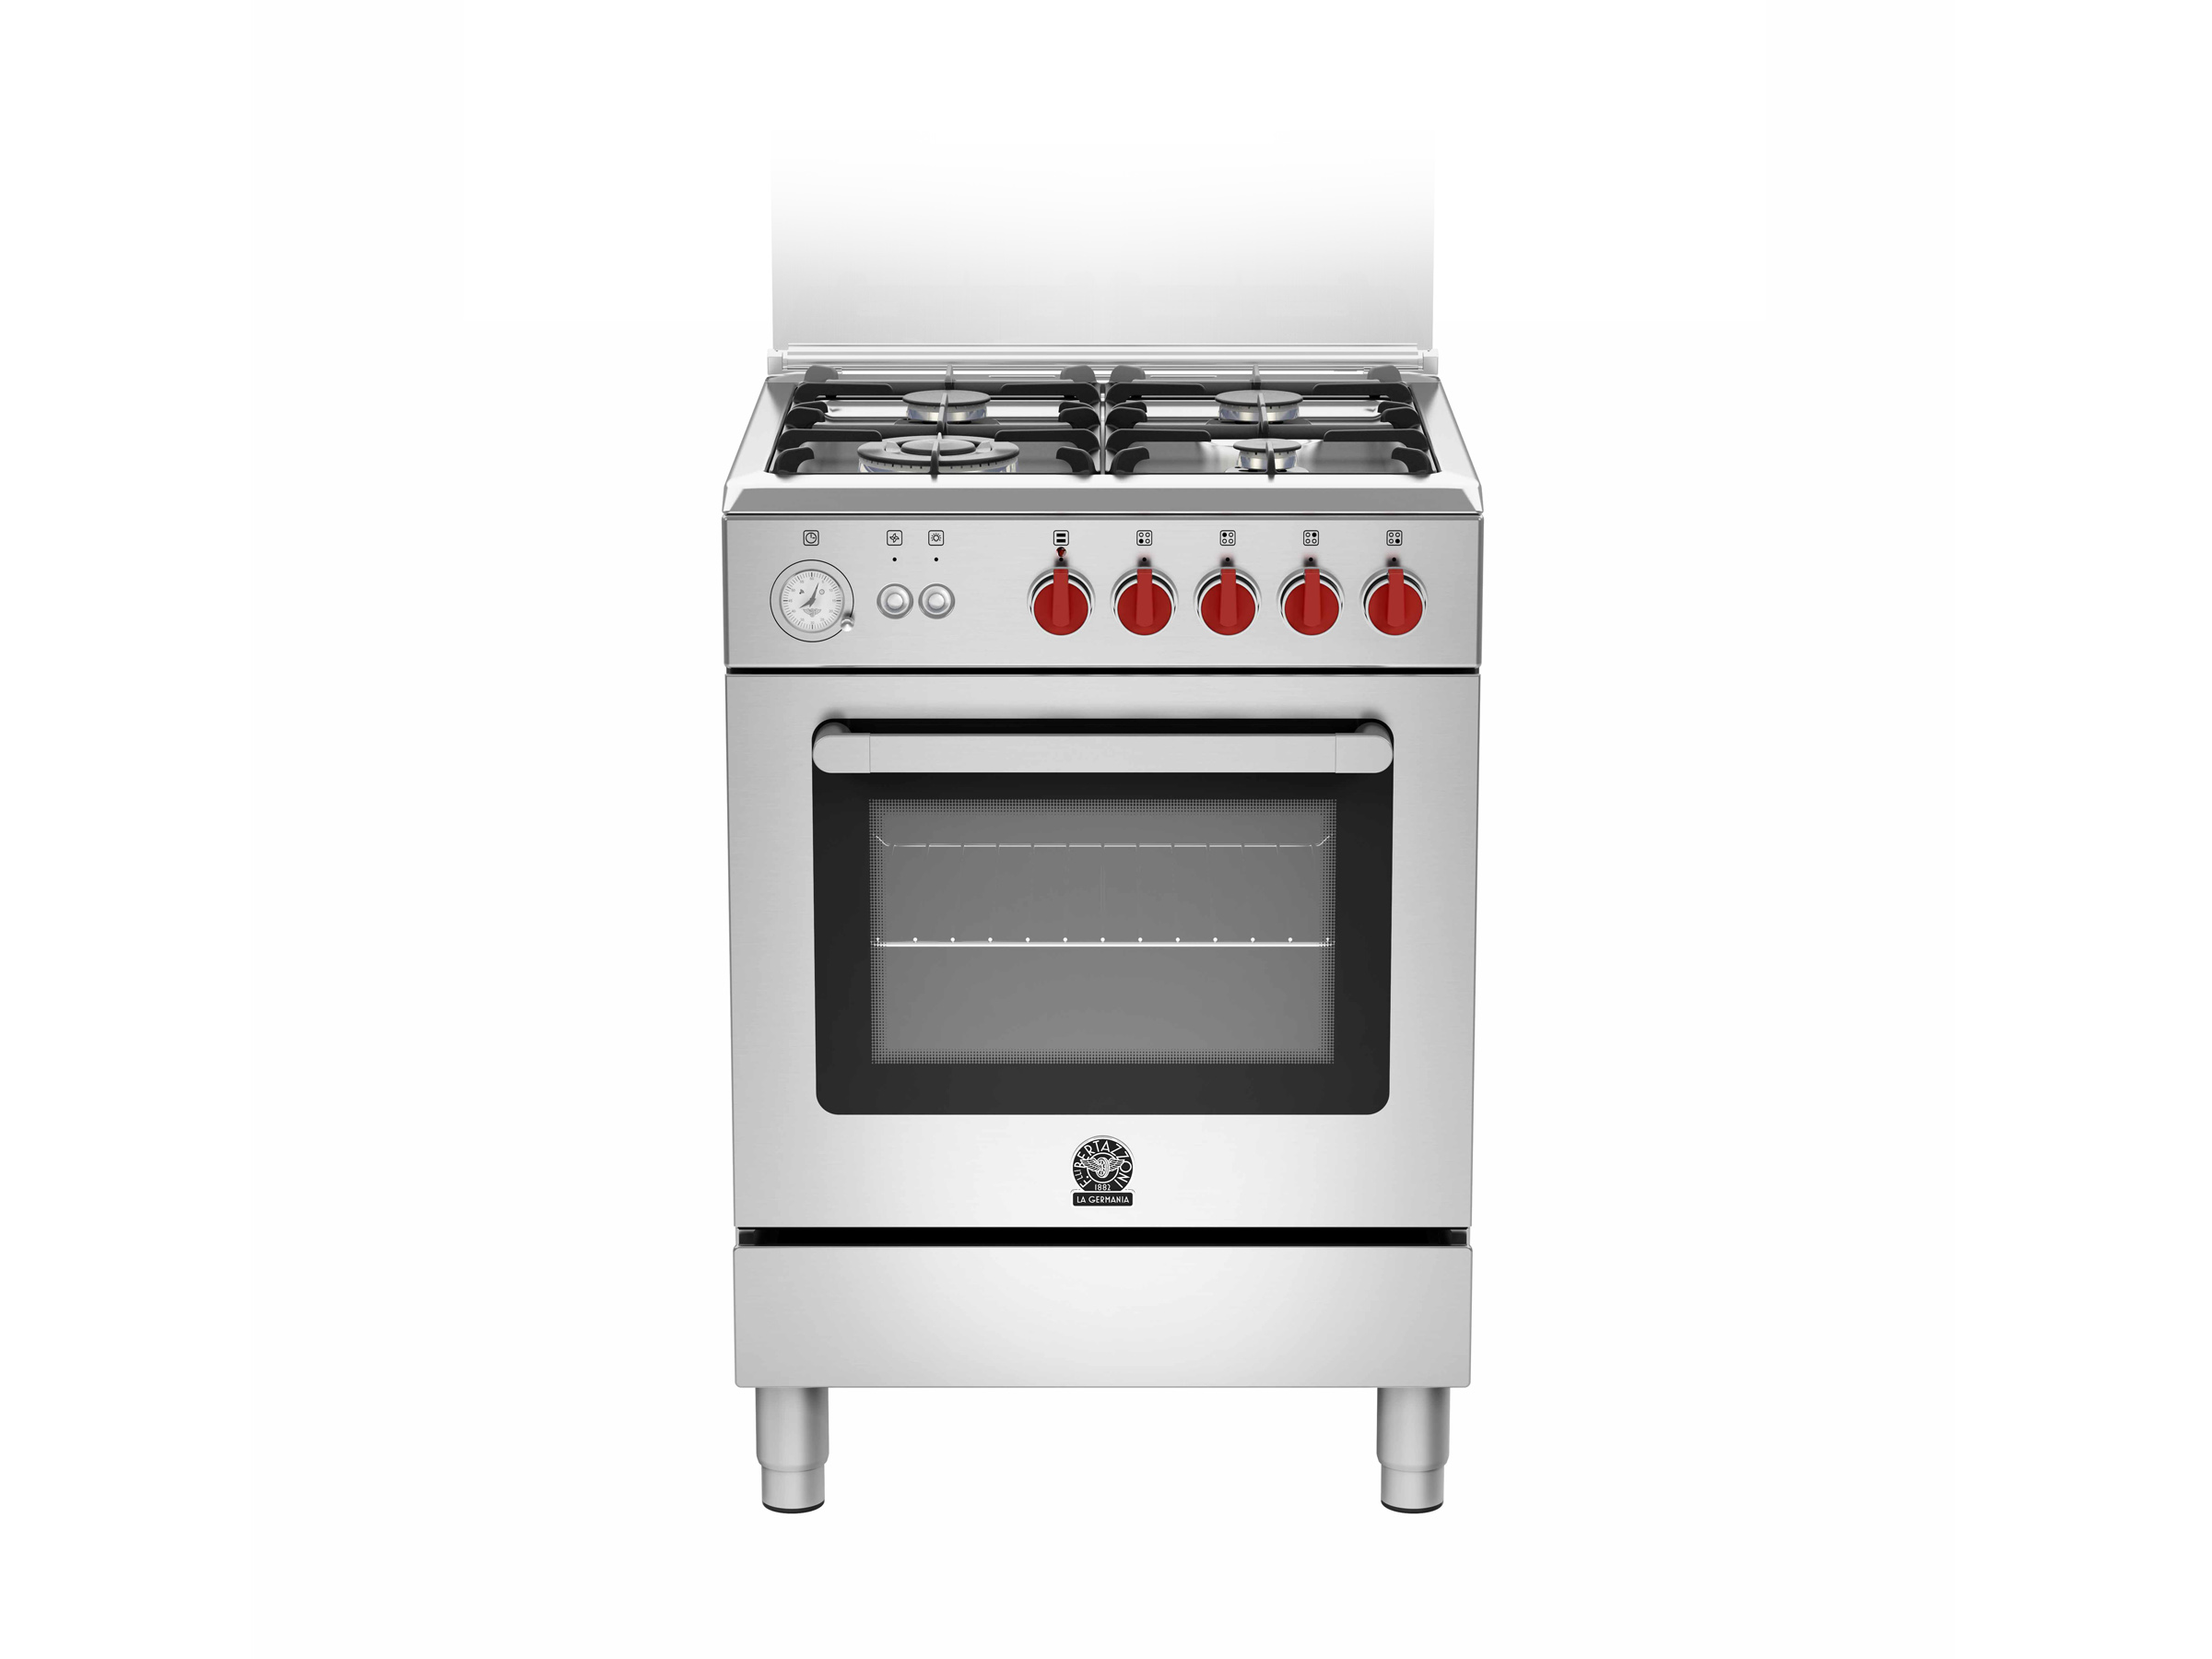 60 4-Burners Gas Oven CX | Bertazzoni La Germania - Stainless